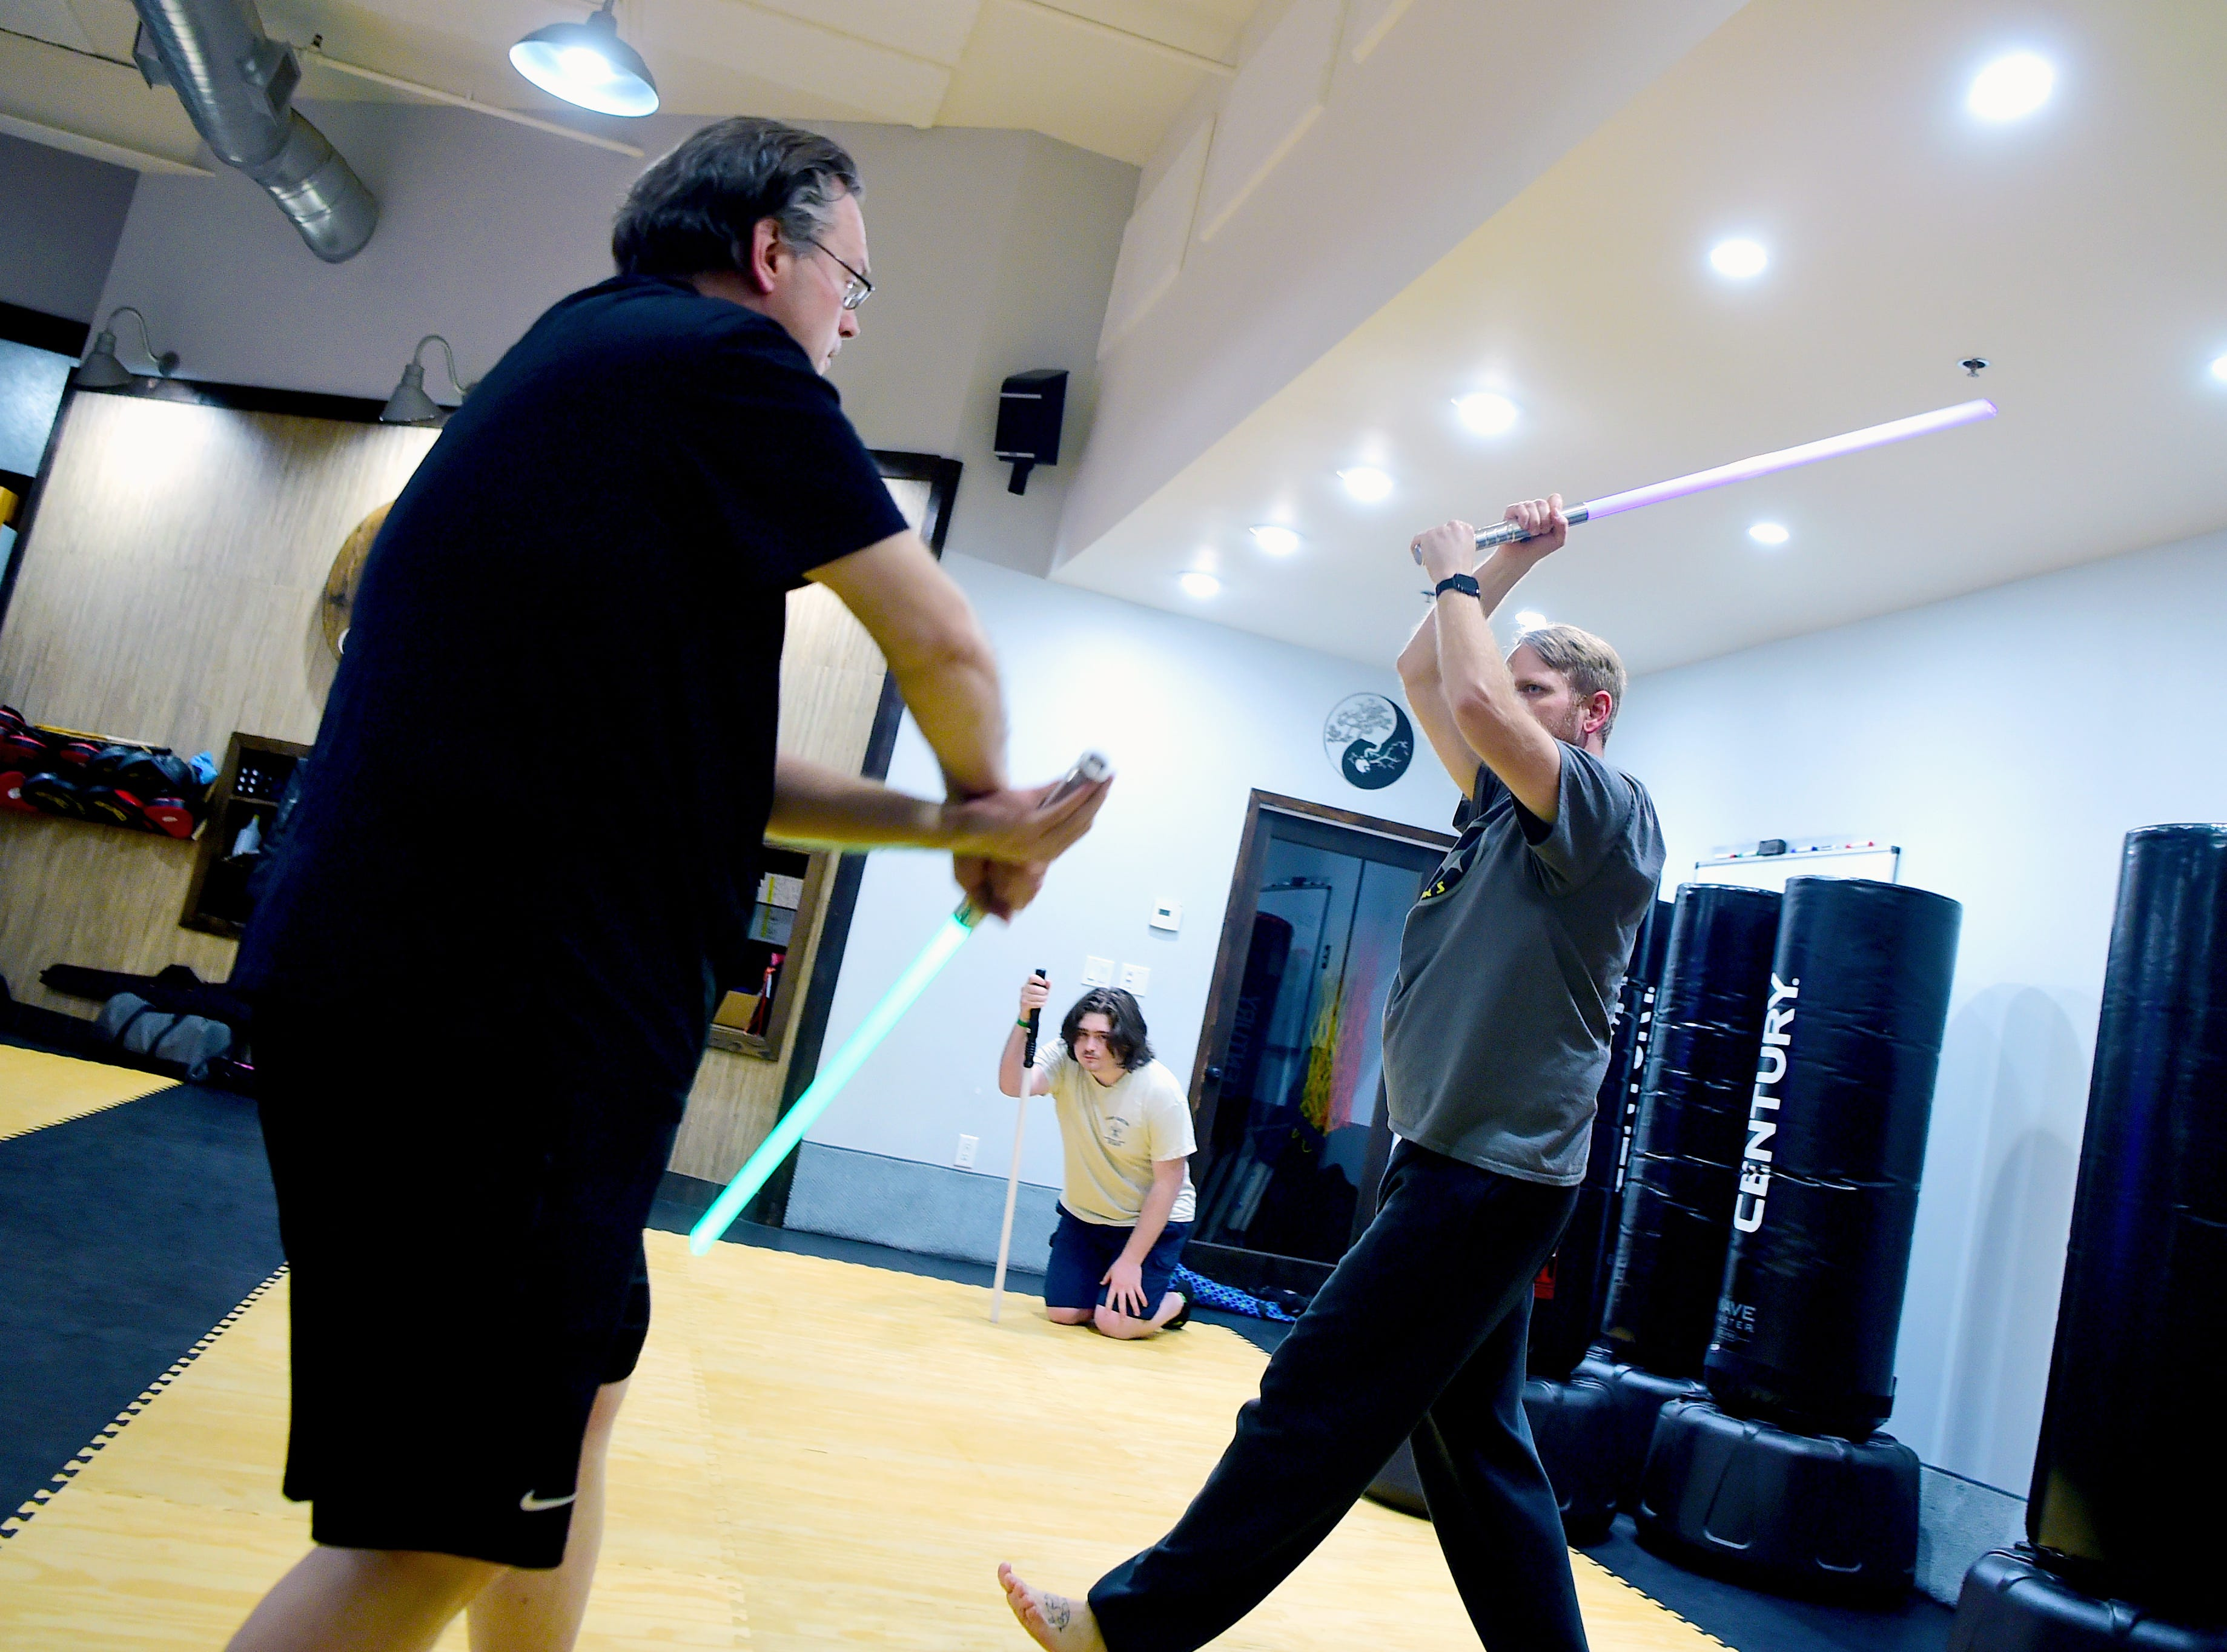 Ithaca Sabers instructor Ben Judkins, left, works with Terry Gray, right, of Lansing, during the group's weekly lightsaber combat session at Centerline Fitness & Martial Arts in Ithaca.  February 4, 2019.